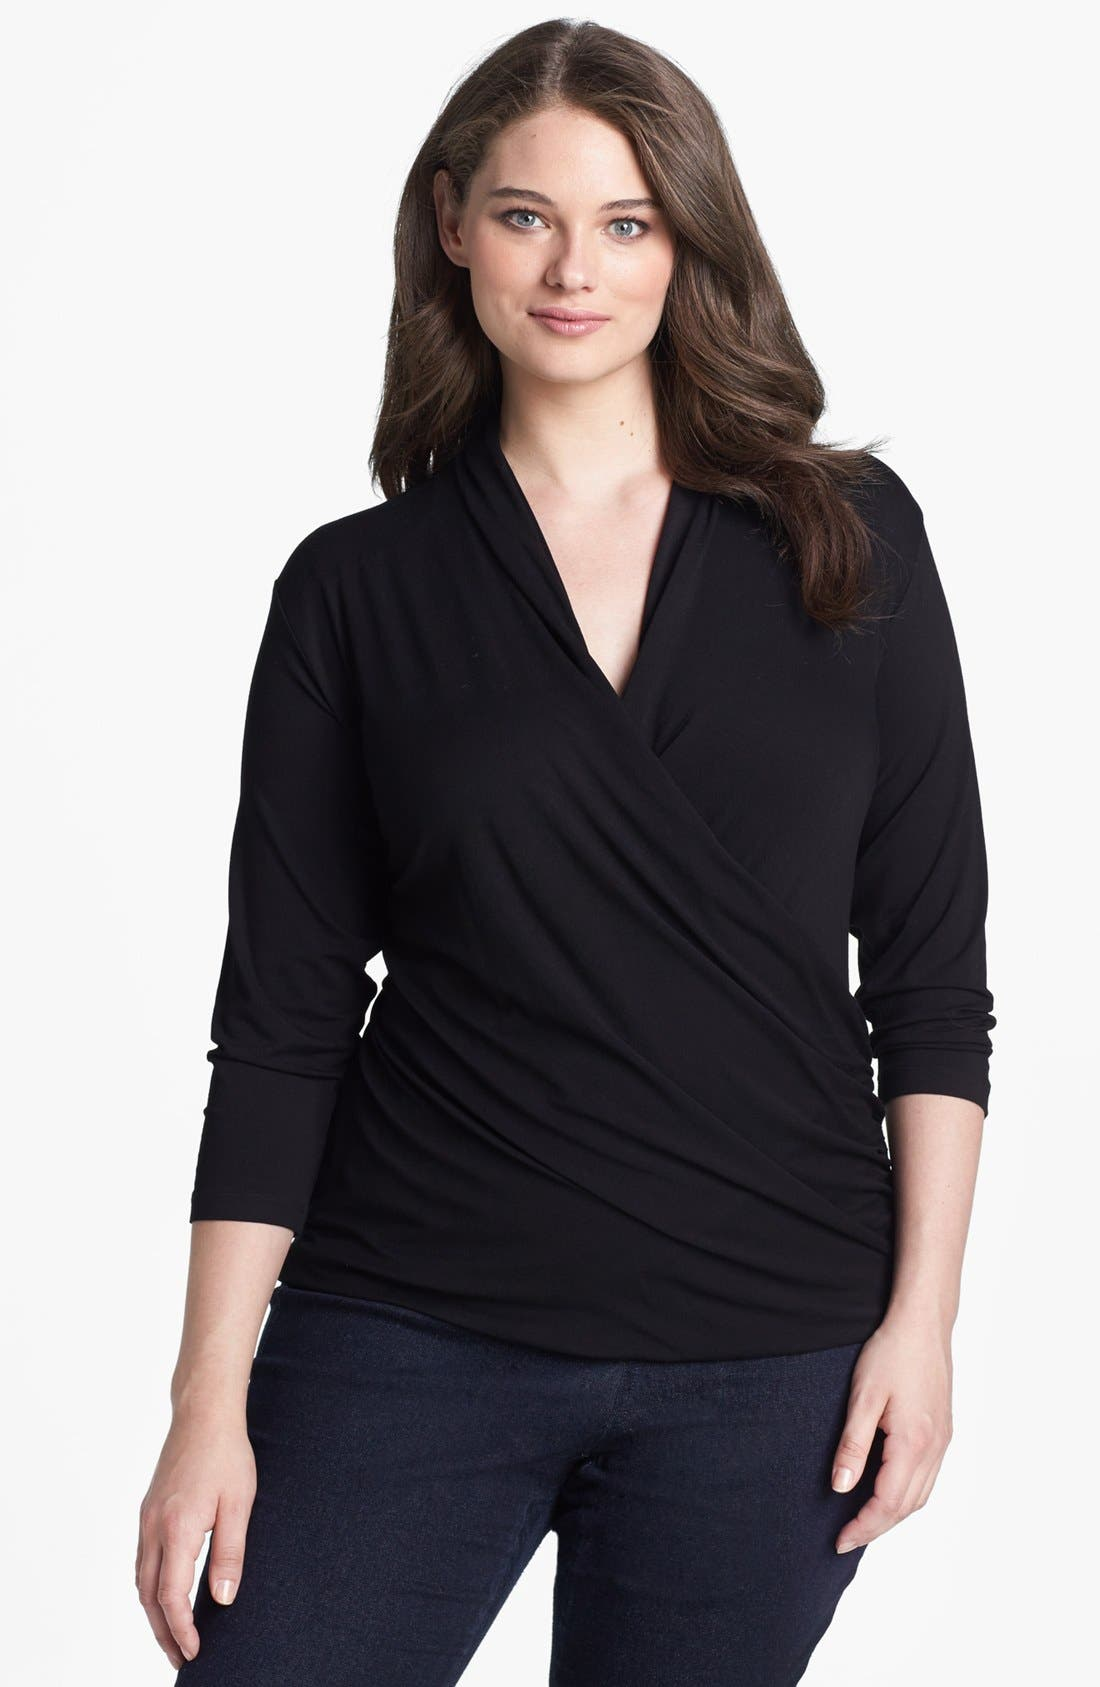 Main Image - Vince Camuto Jersey Wrap Top (Plus Size)